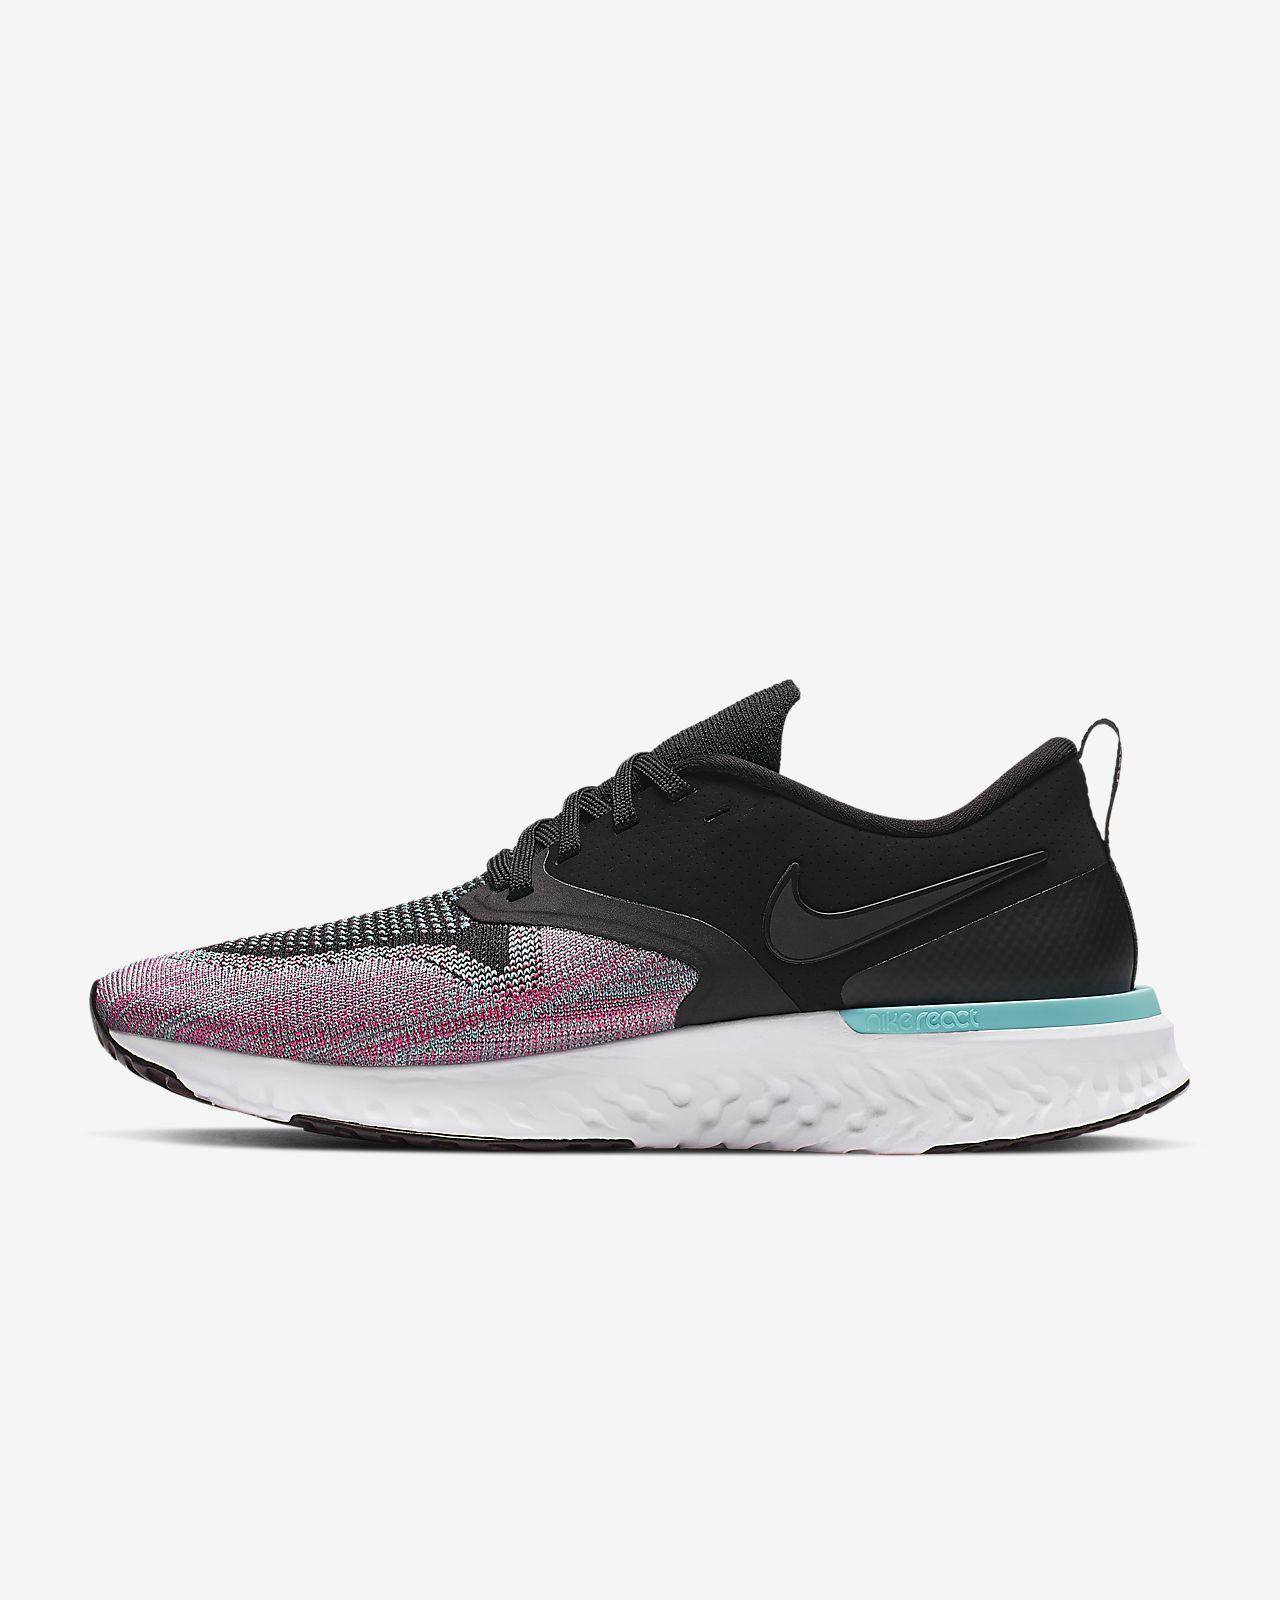 check out 44744 9ad9b ... Nike Odyssey React Flyknit 2 Women s Running Shoe